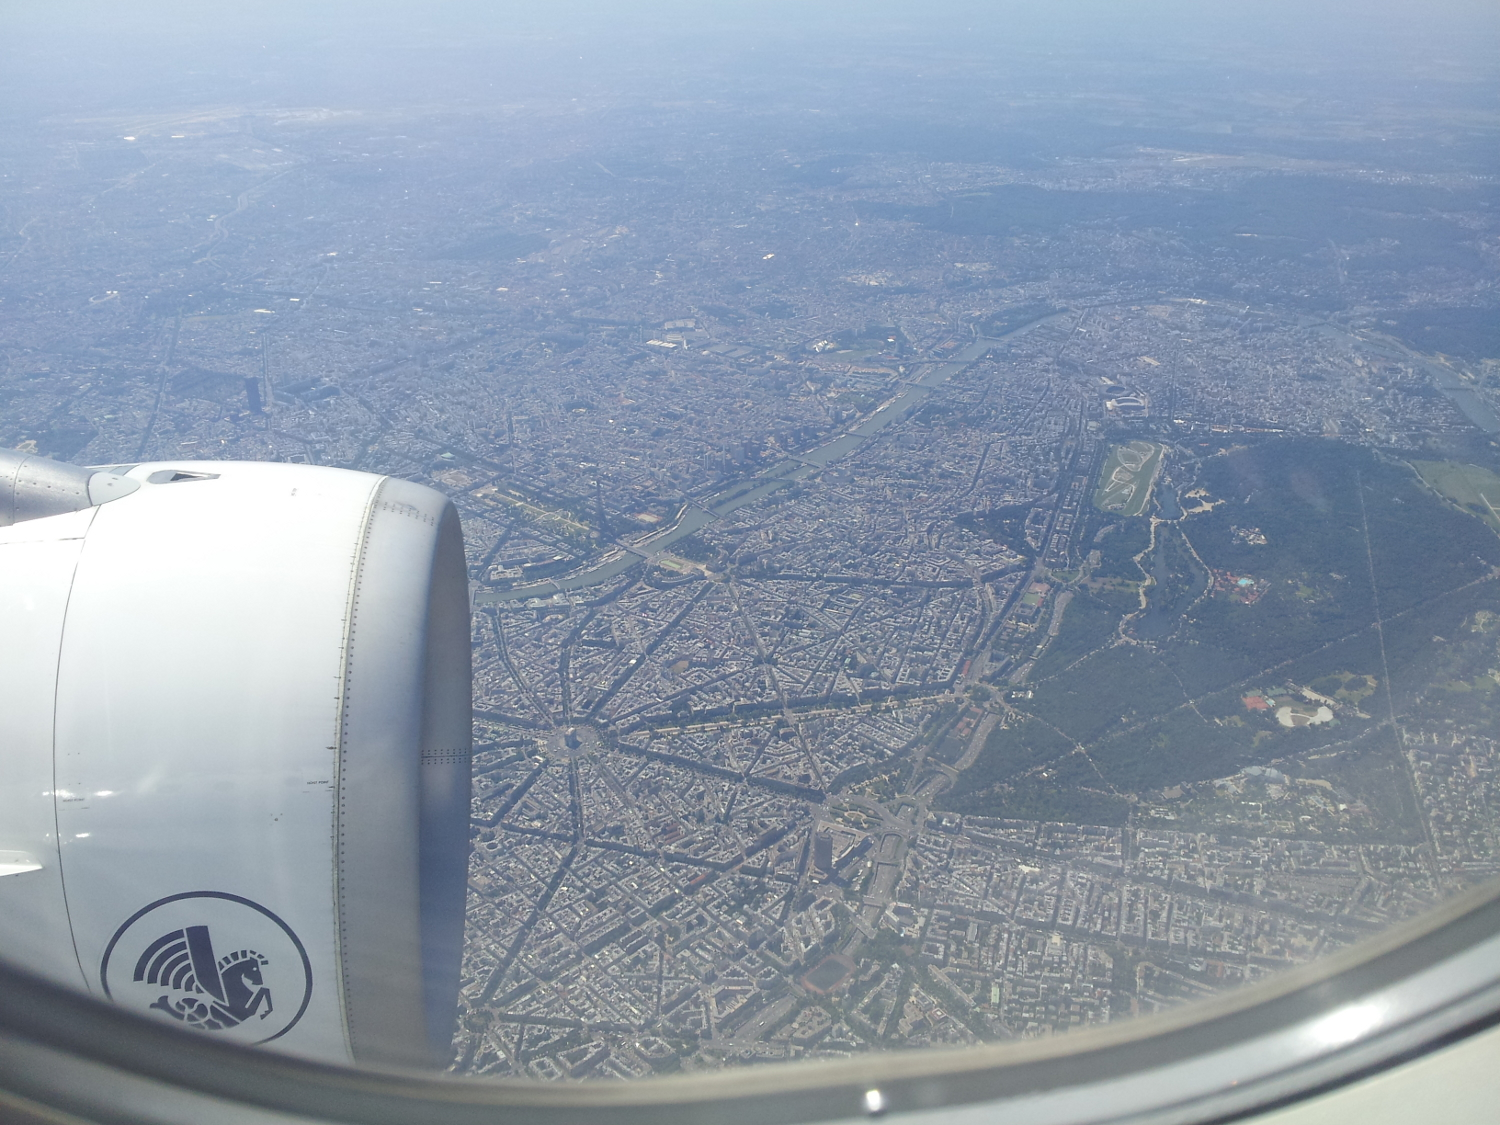 Luxury Airplane Over Eiffel Tower : Paris and the eiffel tower seen from airplane travel